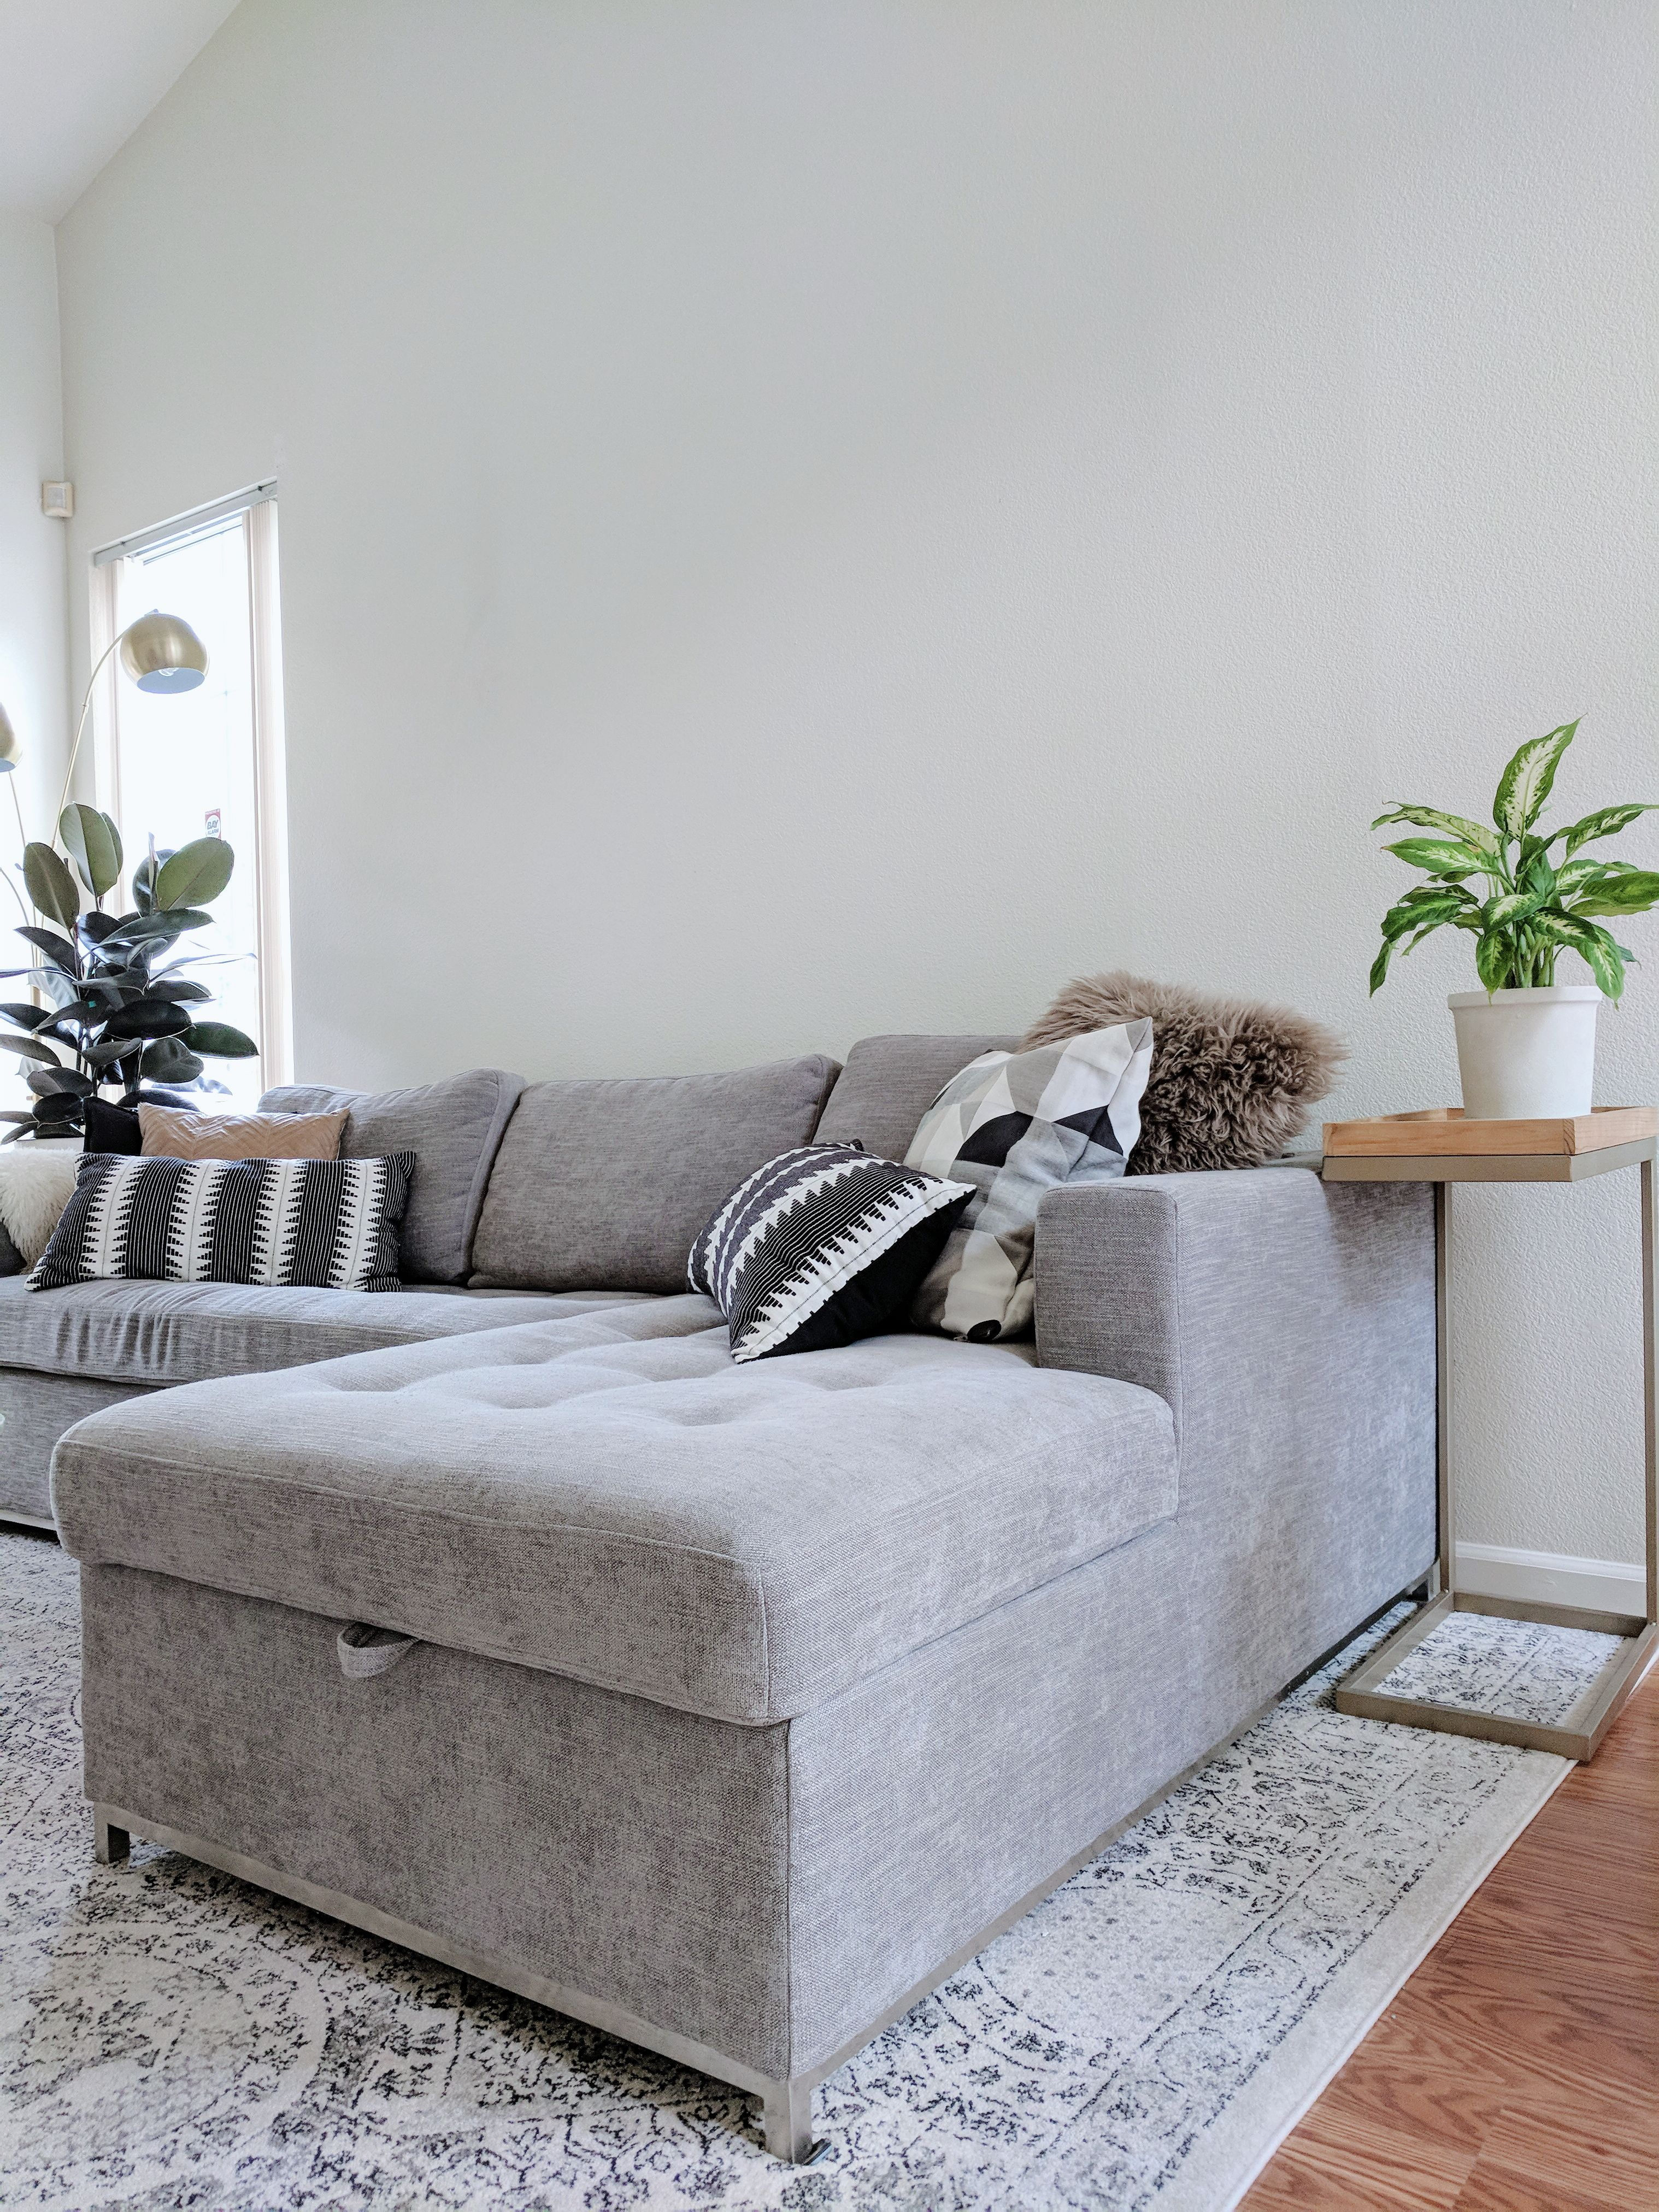 Article Sofa Review How Our Article Sofa Has Held Up Over The Years Ourarticle Homedecorideas Neutrallivingroom Sectional Sleeperso In 2020 Article Sofa Old Sofa Furniture